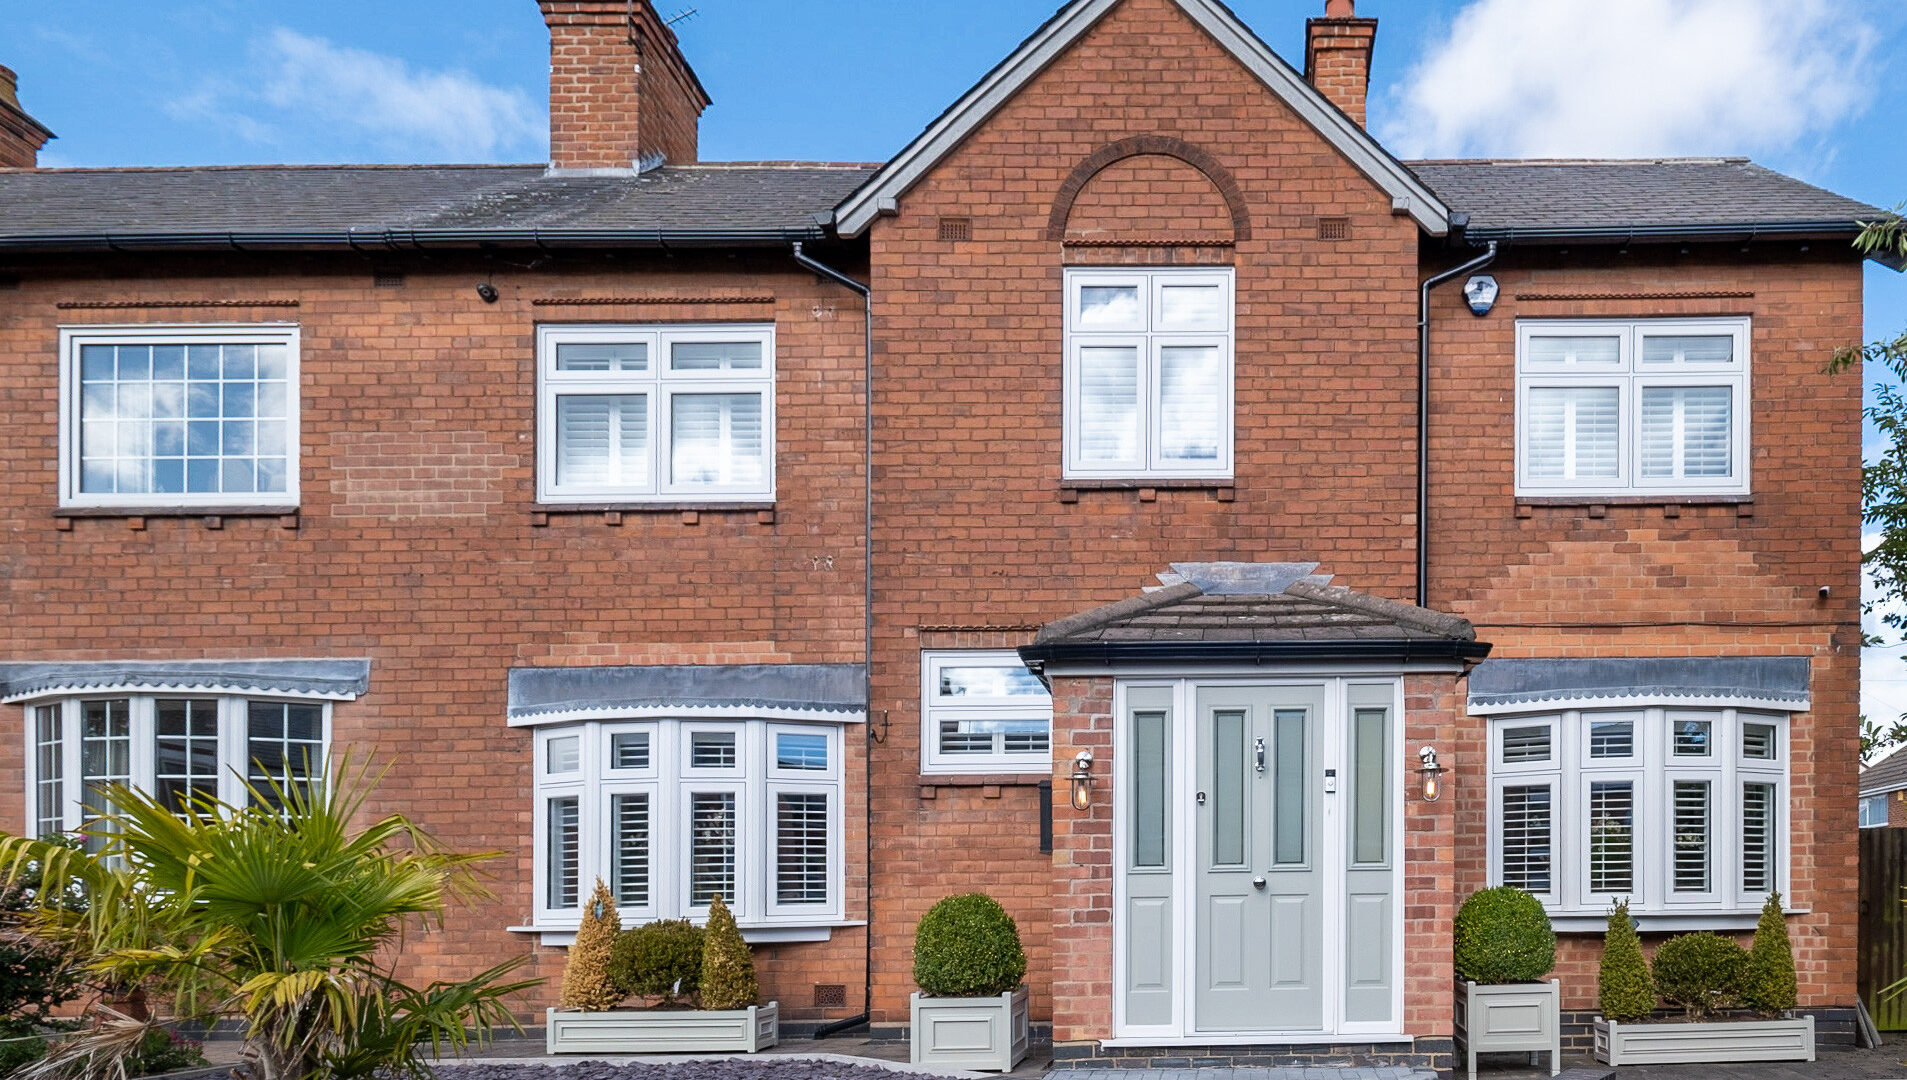 Burton Road, Littleover for sale with Mr and Mrs Clarke estate agent